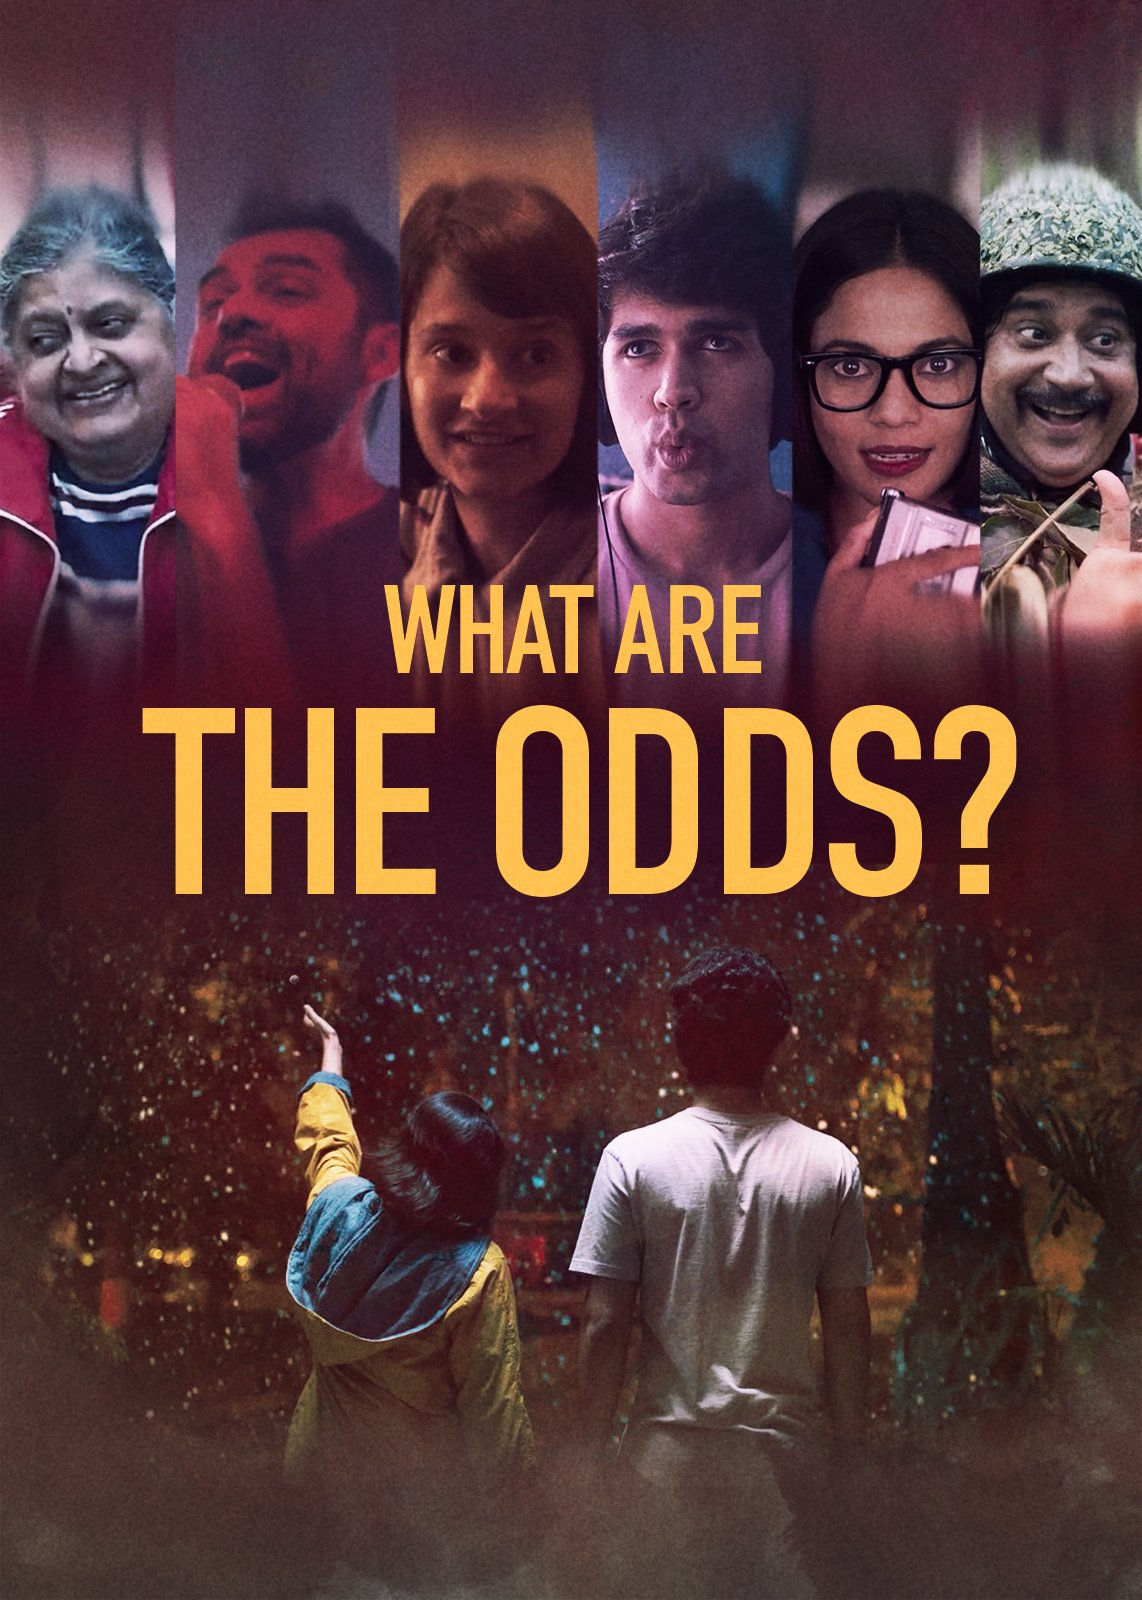 What Are The Odds? | Official Trailer | Abhay Deol, Yashaswini, Karanvir, Monica | Netflix India